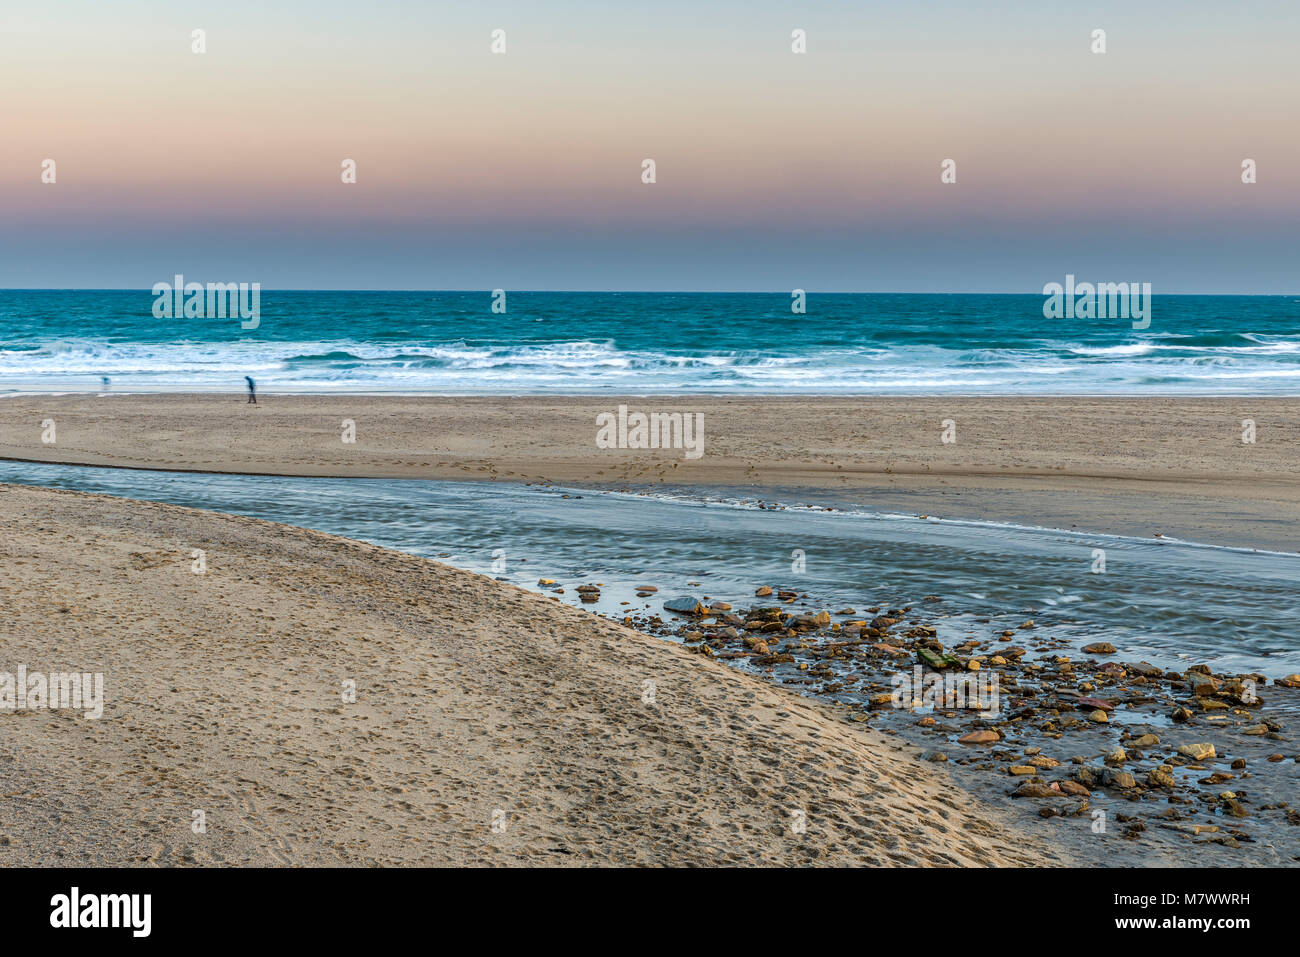 A Bend in a Small Beach Estuary at Sundown on Pentawen Sands, the people are too blurred to make out any defining - Stock Image